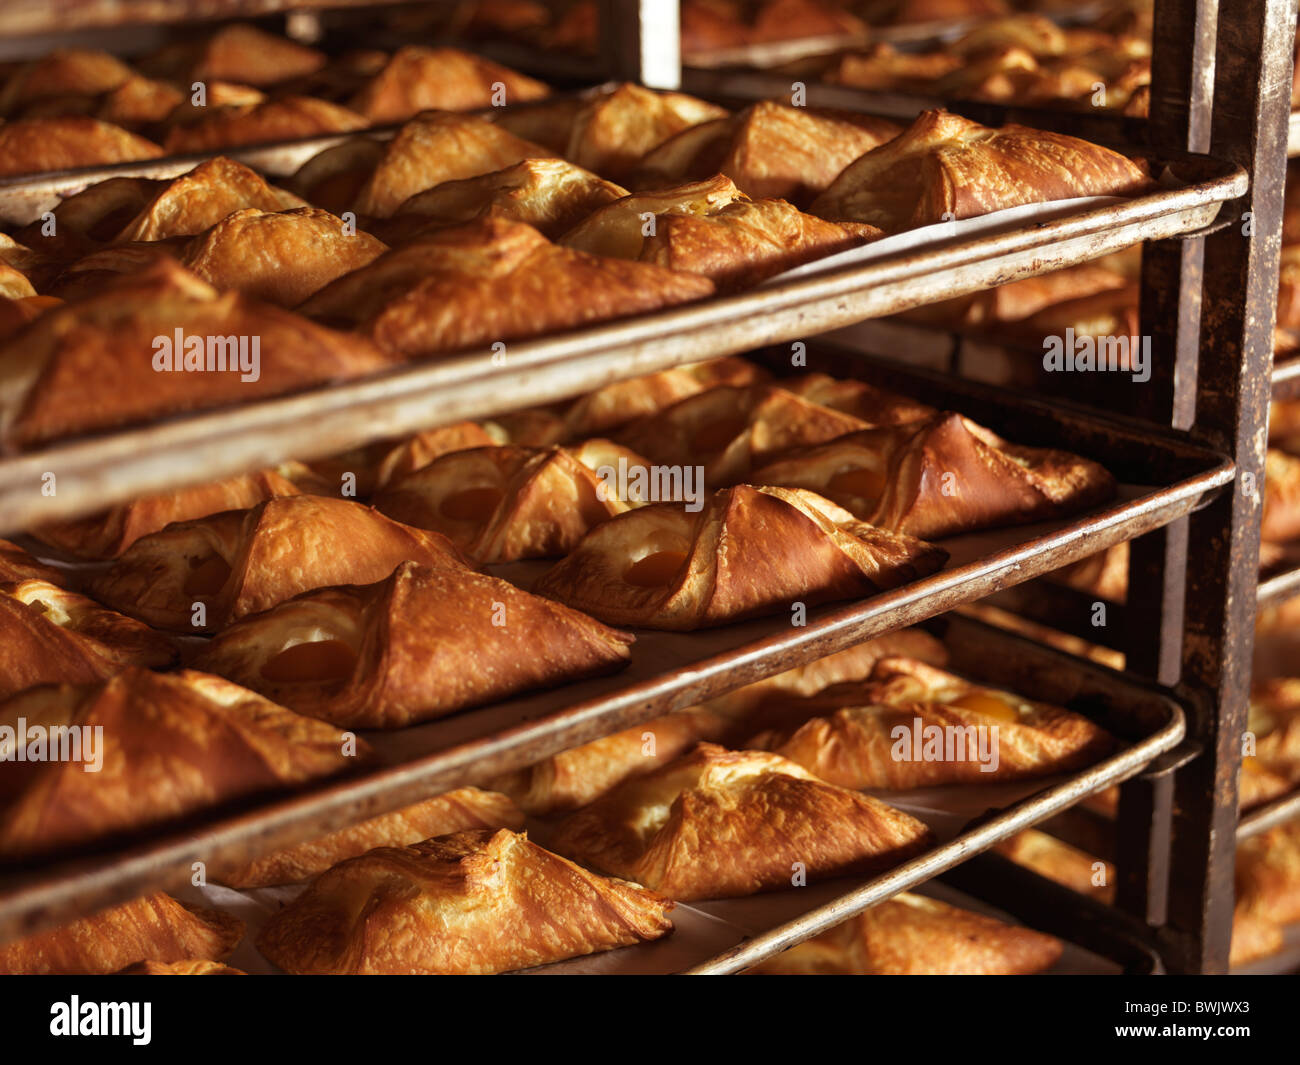 Freshly baked pastries on baking trays in bakery rack trolleys - Stock Image